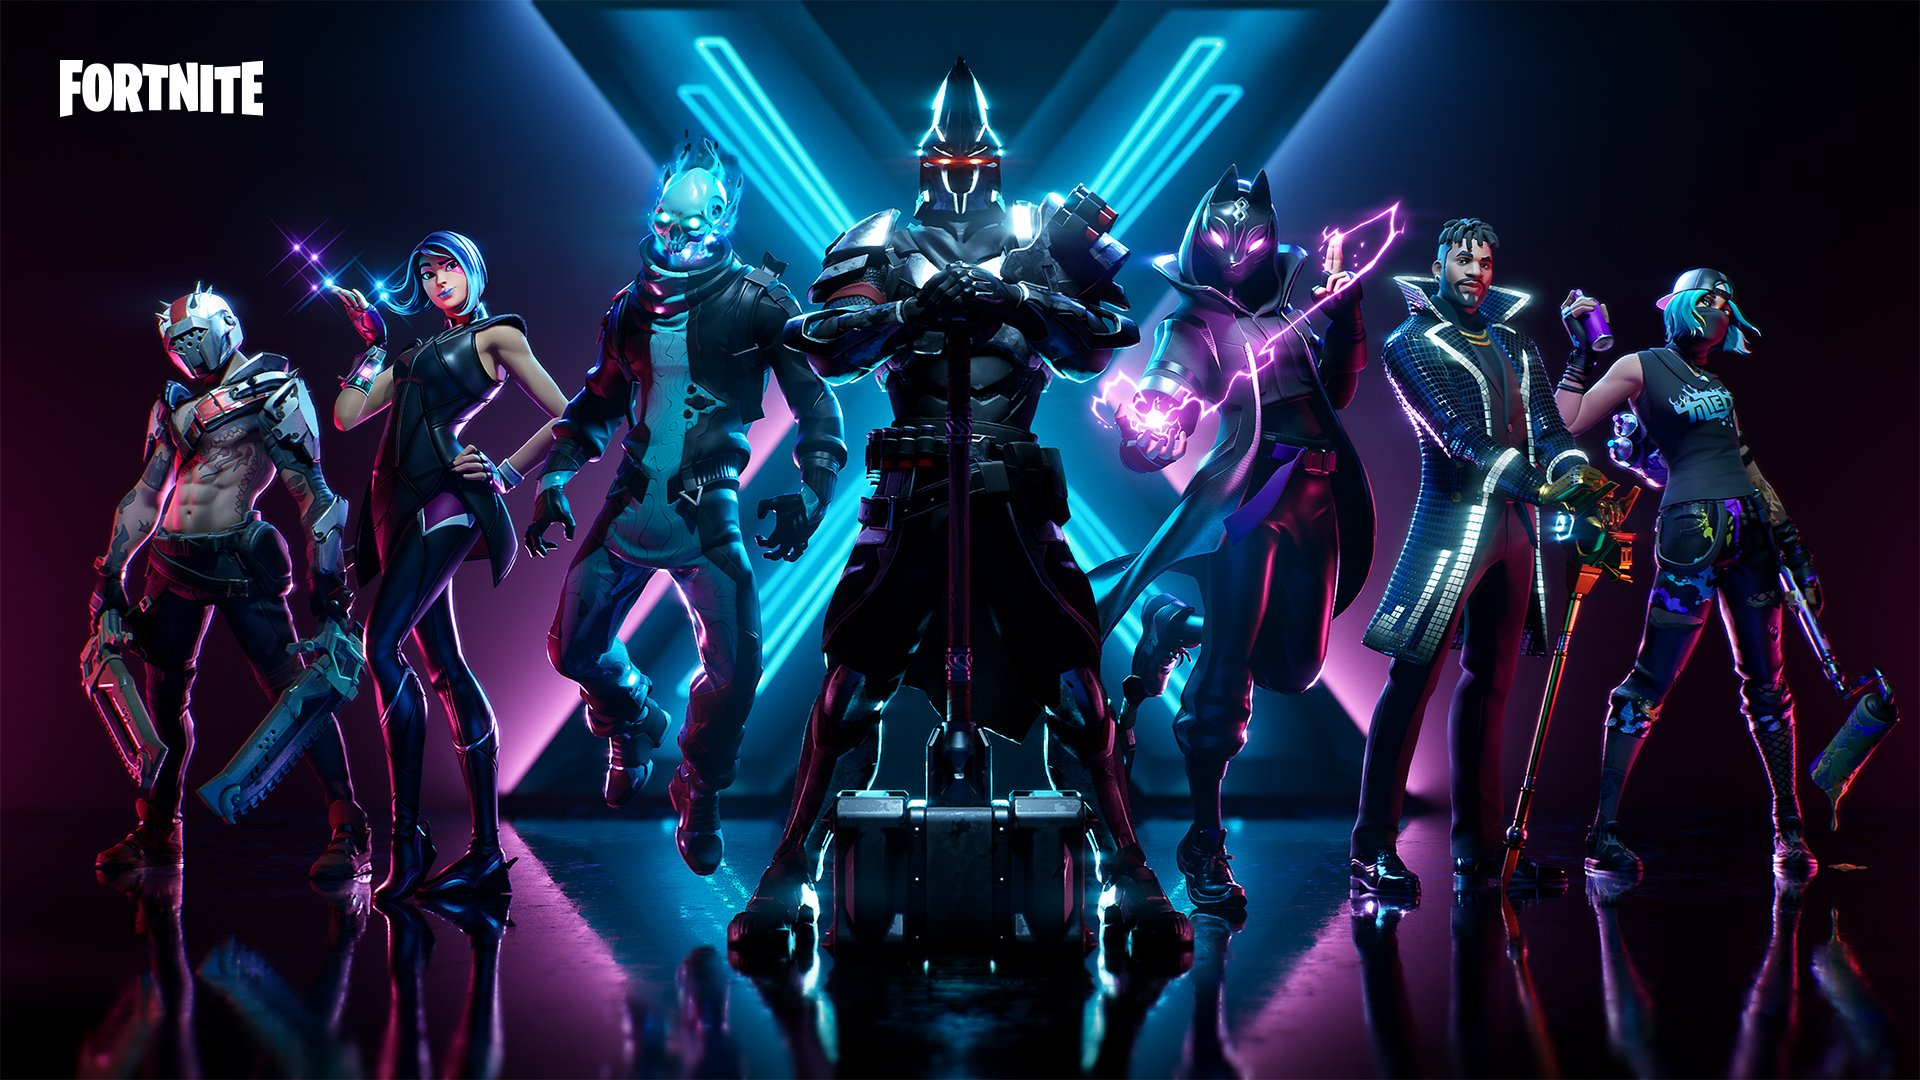 Fortnite Season 11 News Rumors and An Event Which Leaks Some 1920x1080